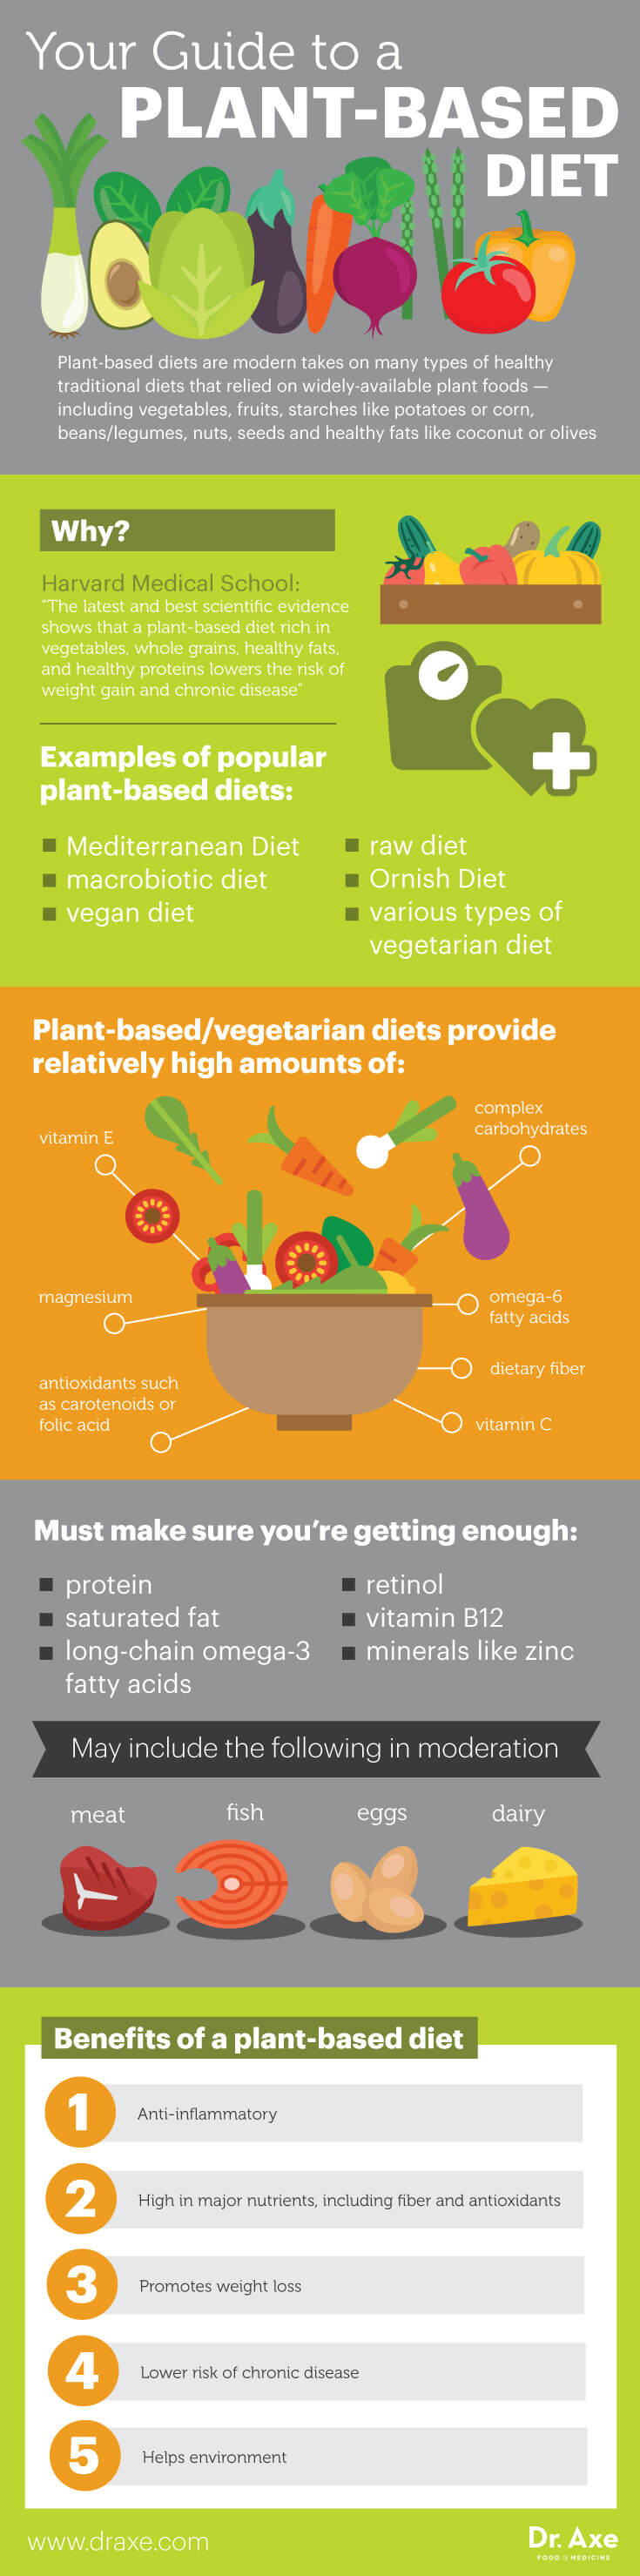 Some plant-based diets less healthy than others, researchers say